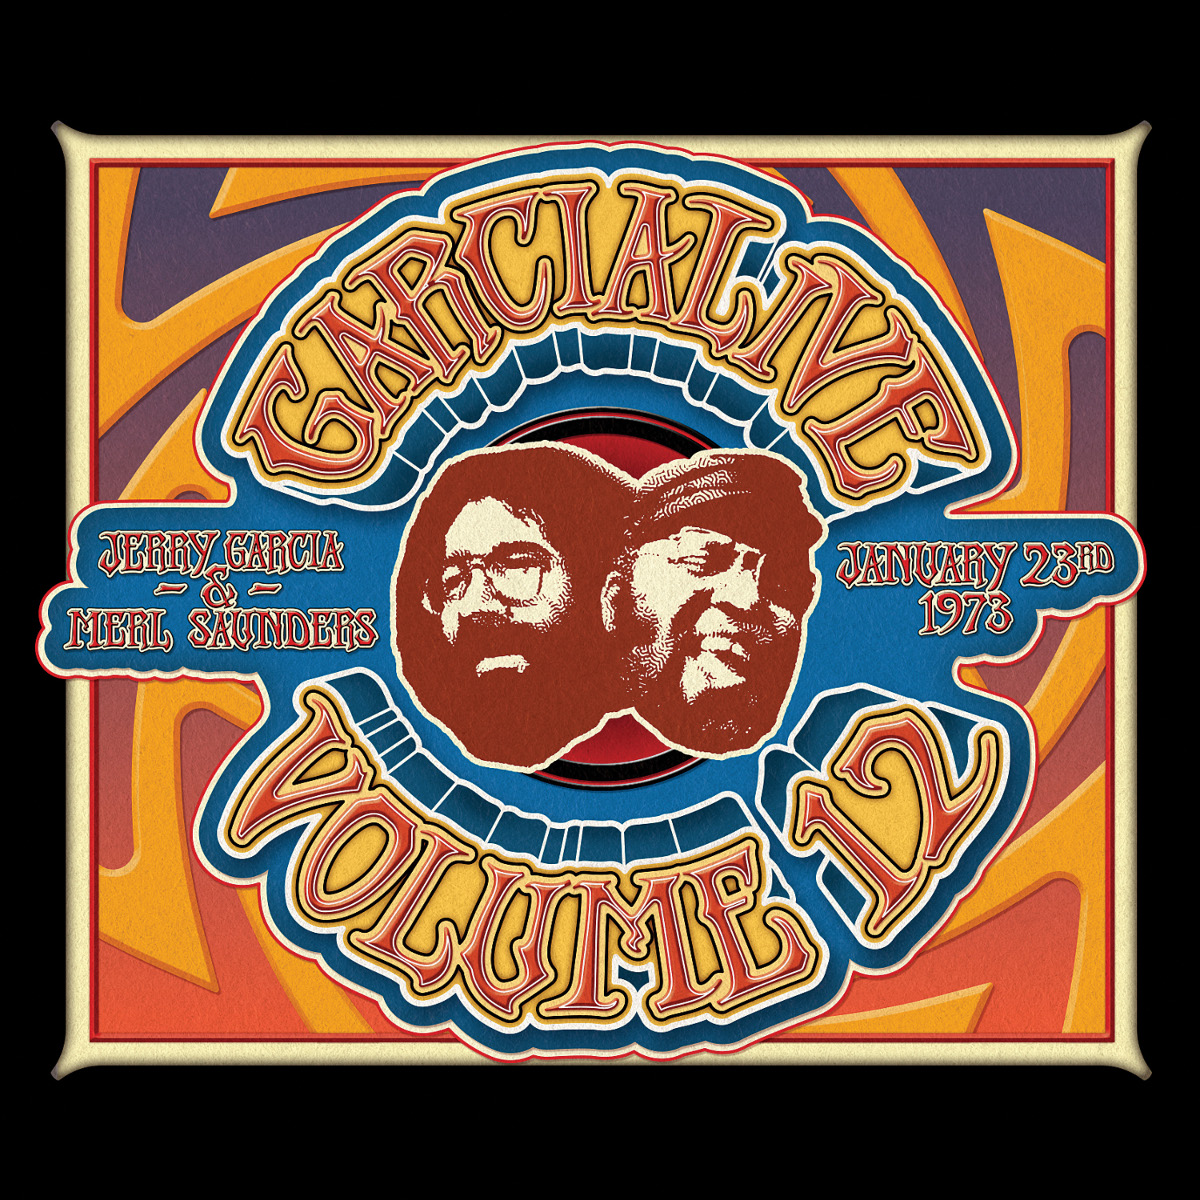 Jerry Garcia & Merl Saunders – GarciaLive Volume 12: 01/23/73 3-CD Set or Digital Download